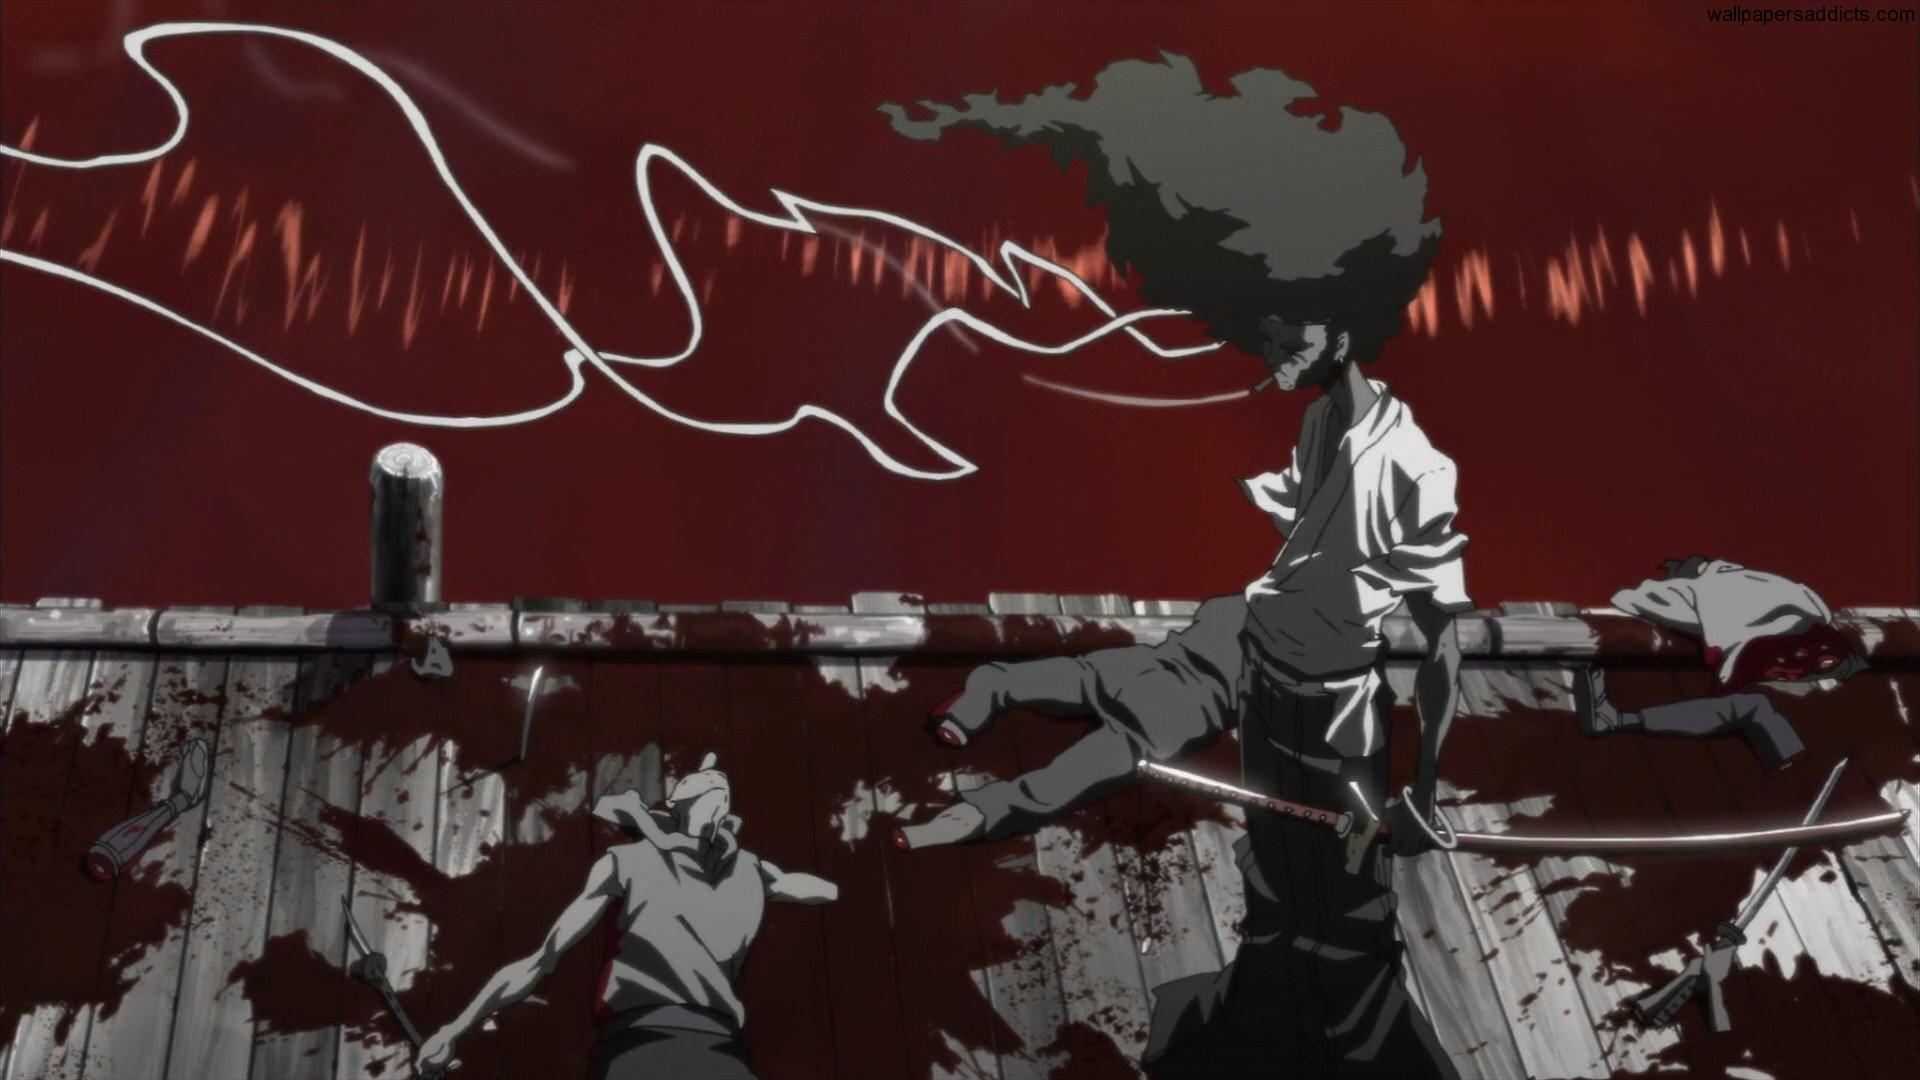 River of Blood – by Afro Samurai